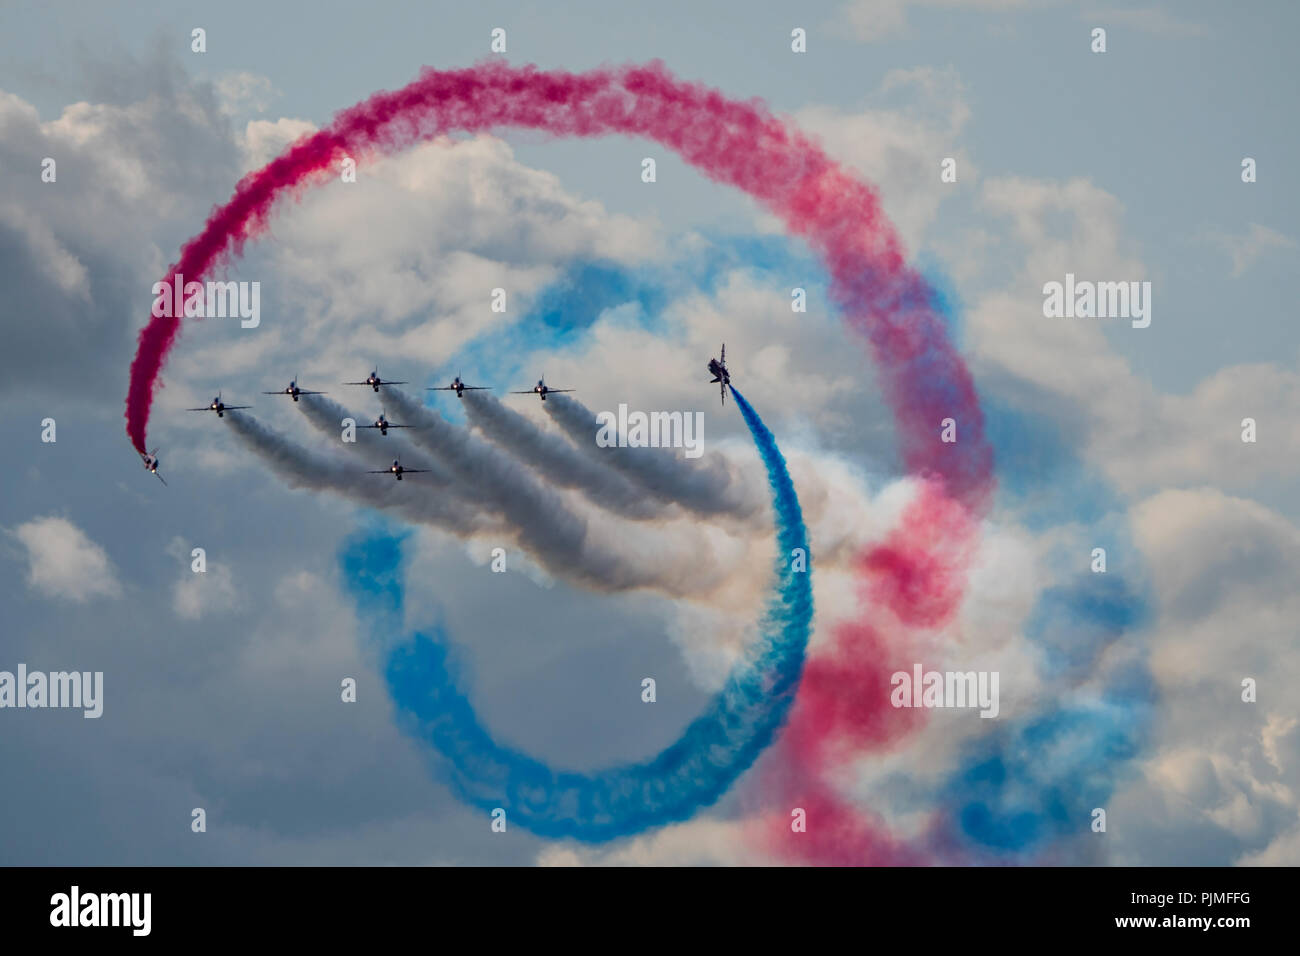 The RAF Red Arrows perform the Tornado manoeuvre during their afternoon display at Dunsfold Wings & Wheels, UK on the 25th August 2018. - Stock Image